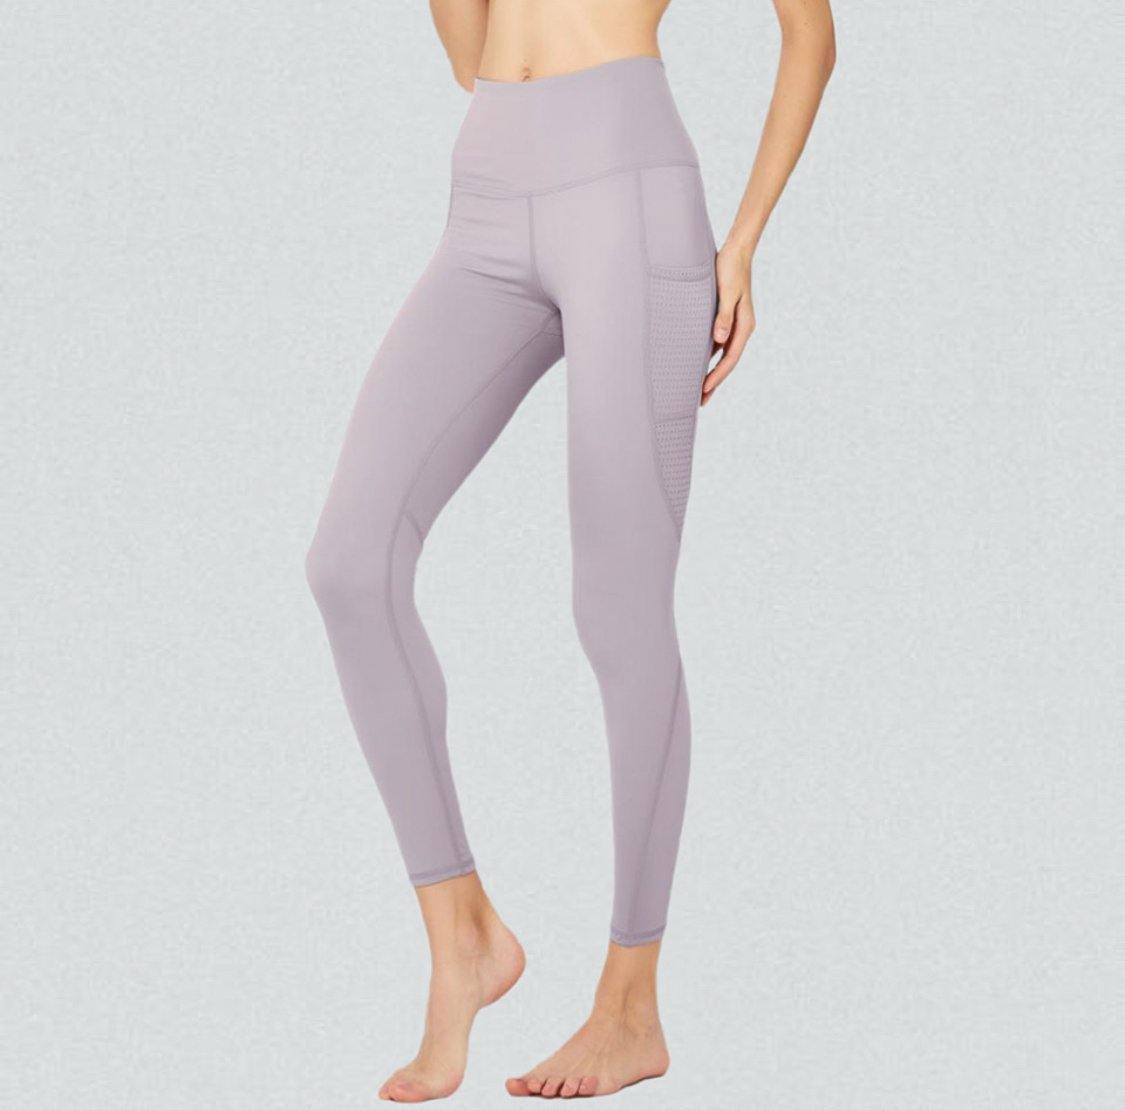 Active Mesh High Rise Leggings with Pockets - TrueFeat